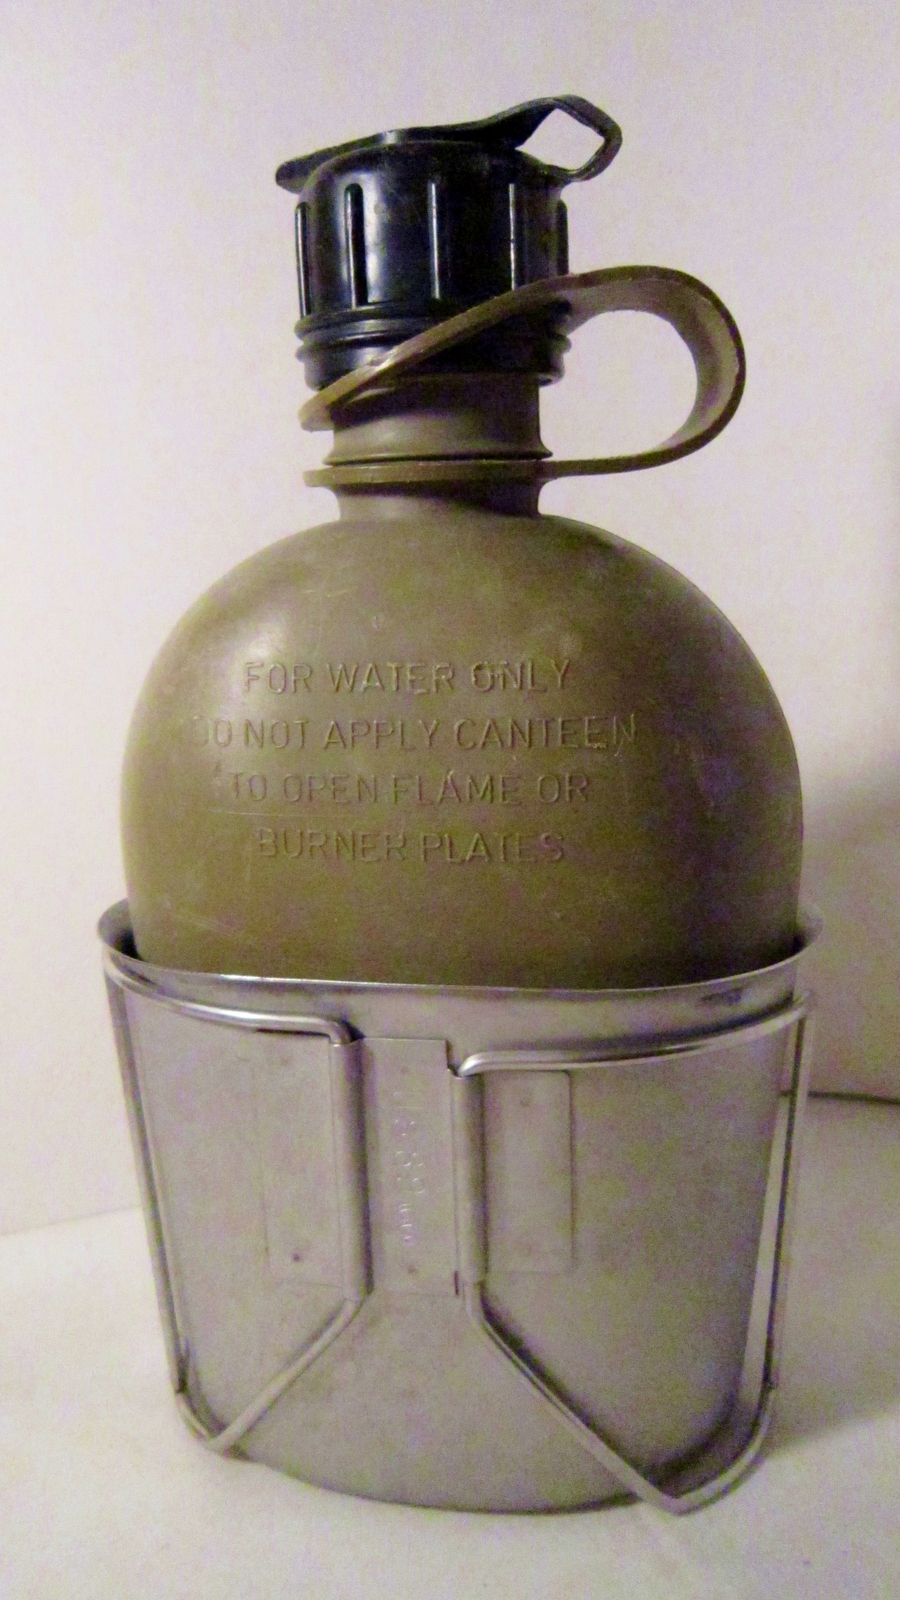 Canteen and metal cup us military 1980s 01